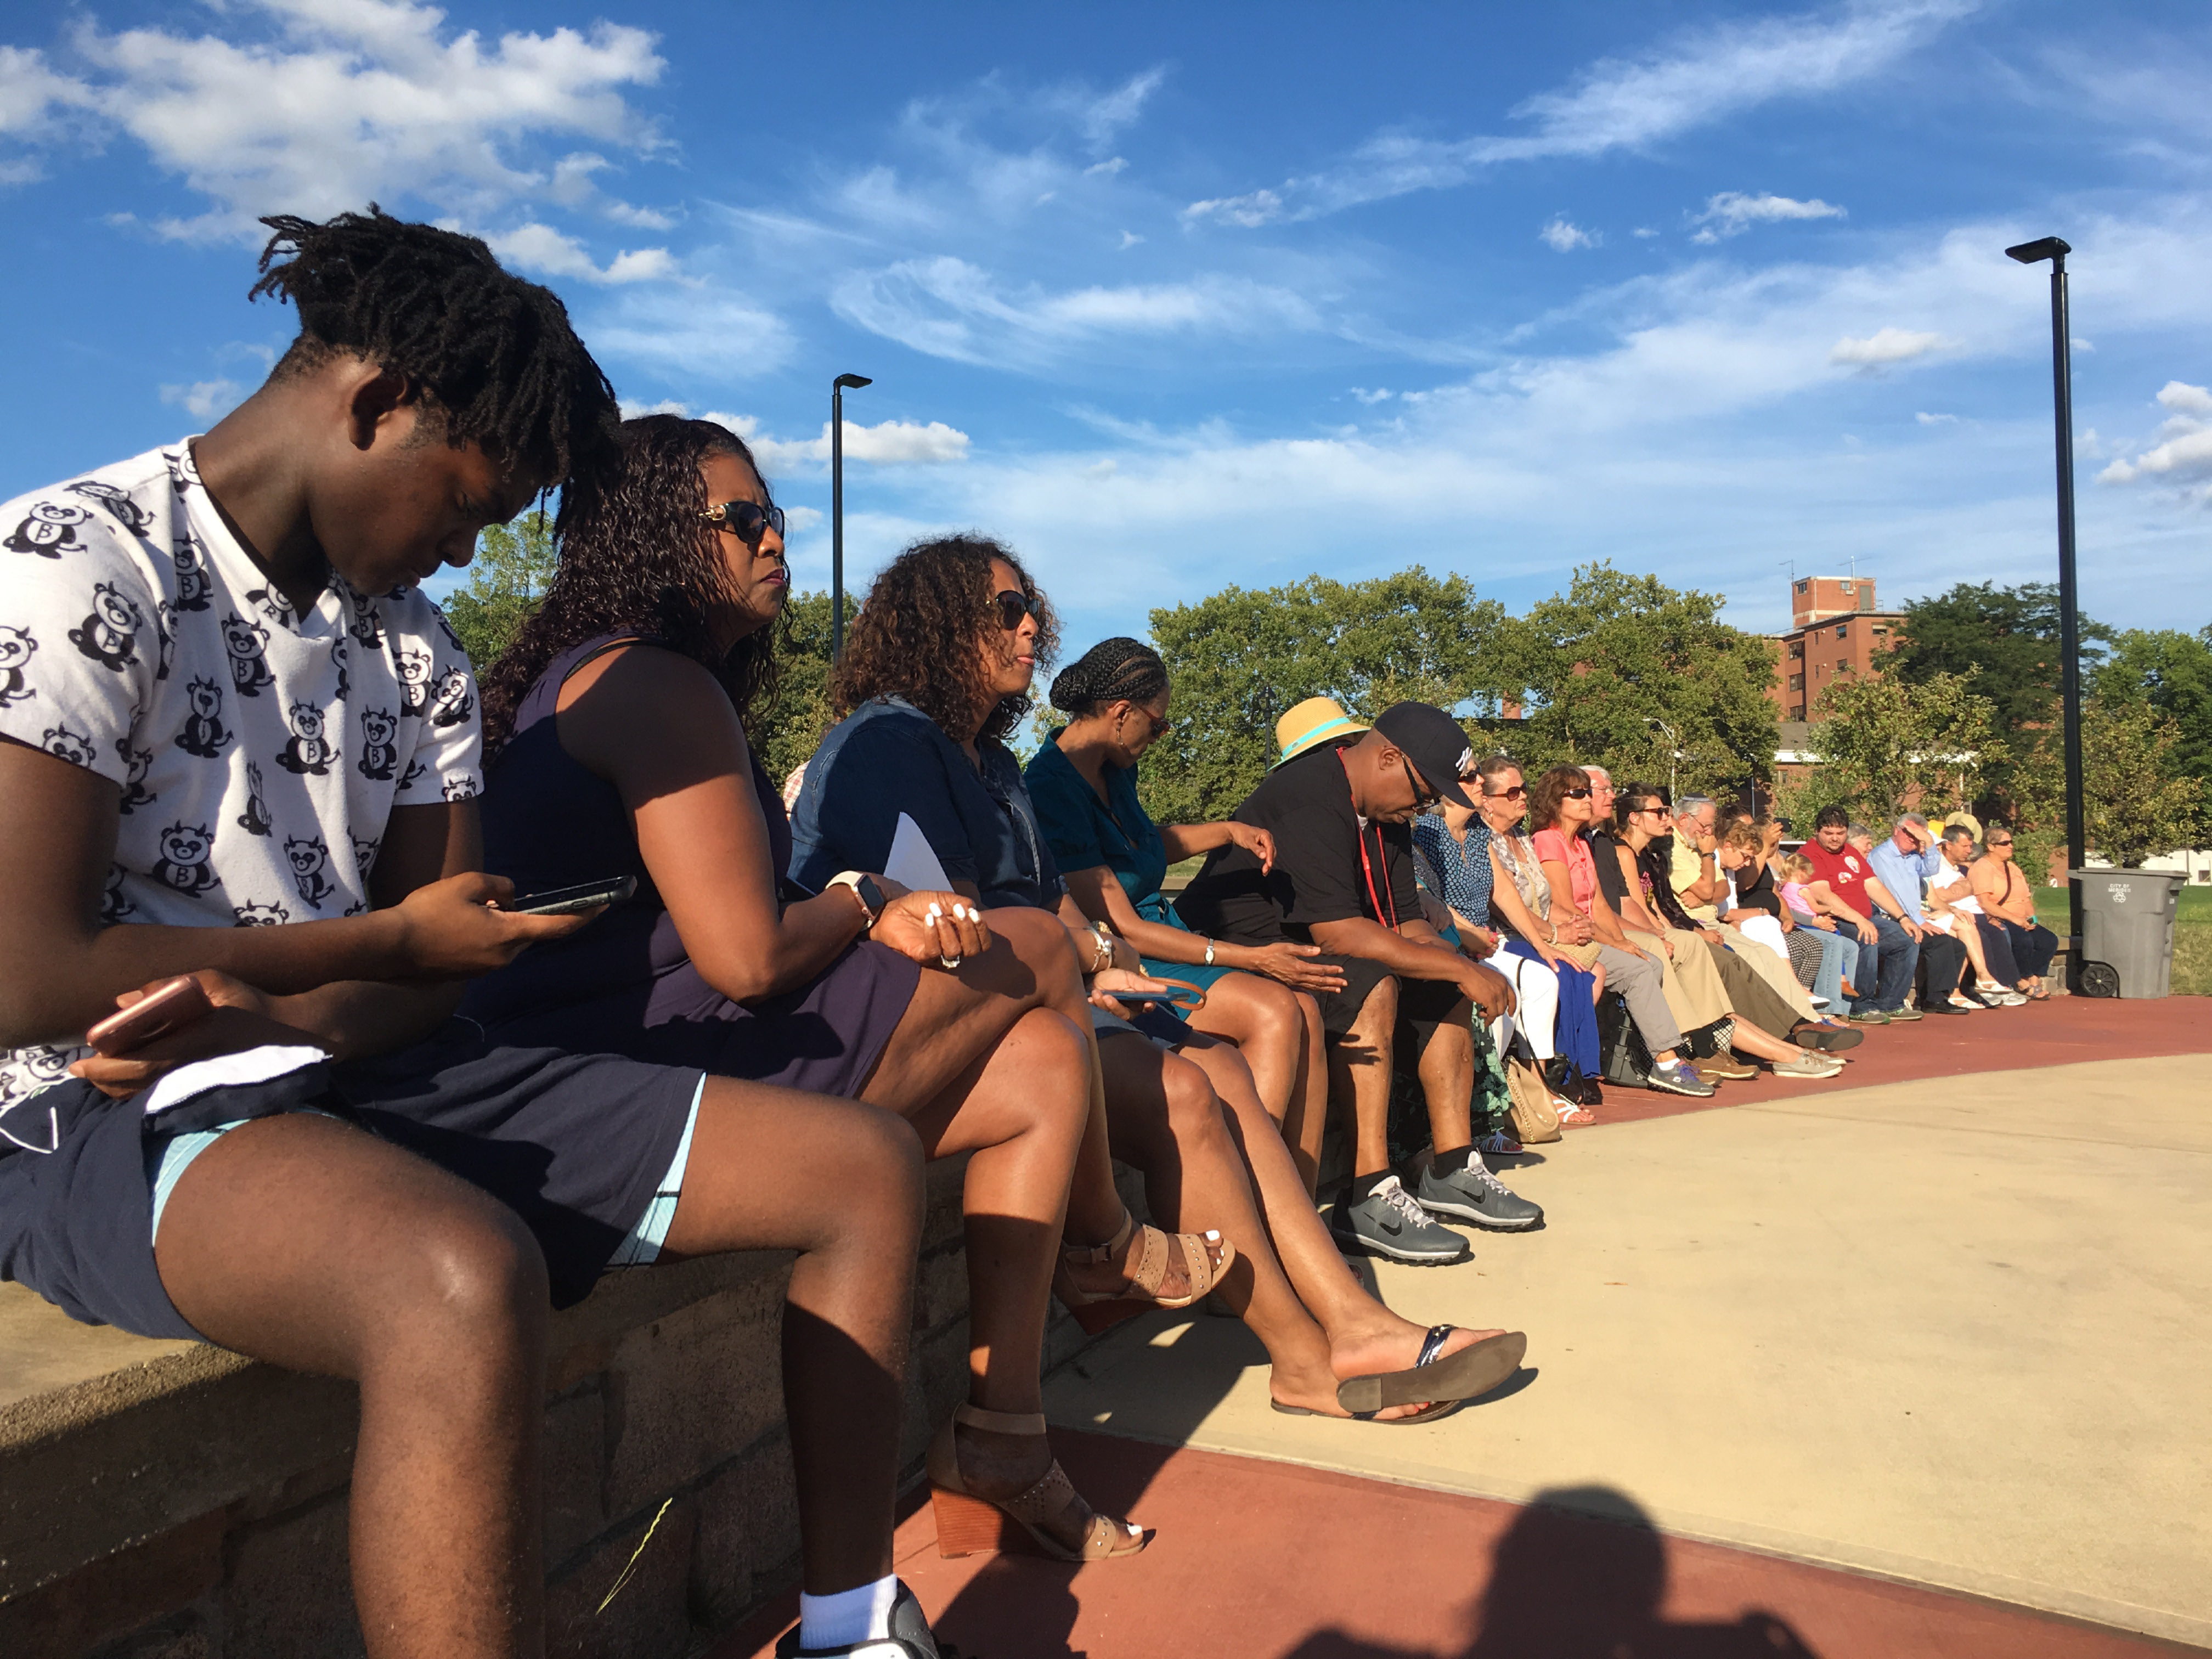 People lined the benches of the Meriden Green band shell for a peace rally hosted by area nonprofits, government and religious groups on Wednesday, Aug. 23, 2017. | Lauren Takores, Record-Journal